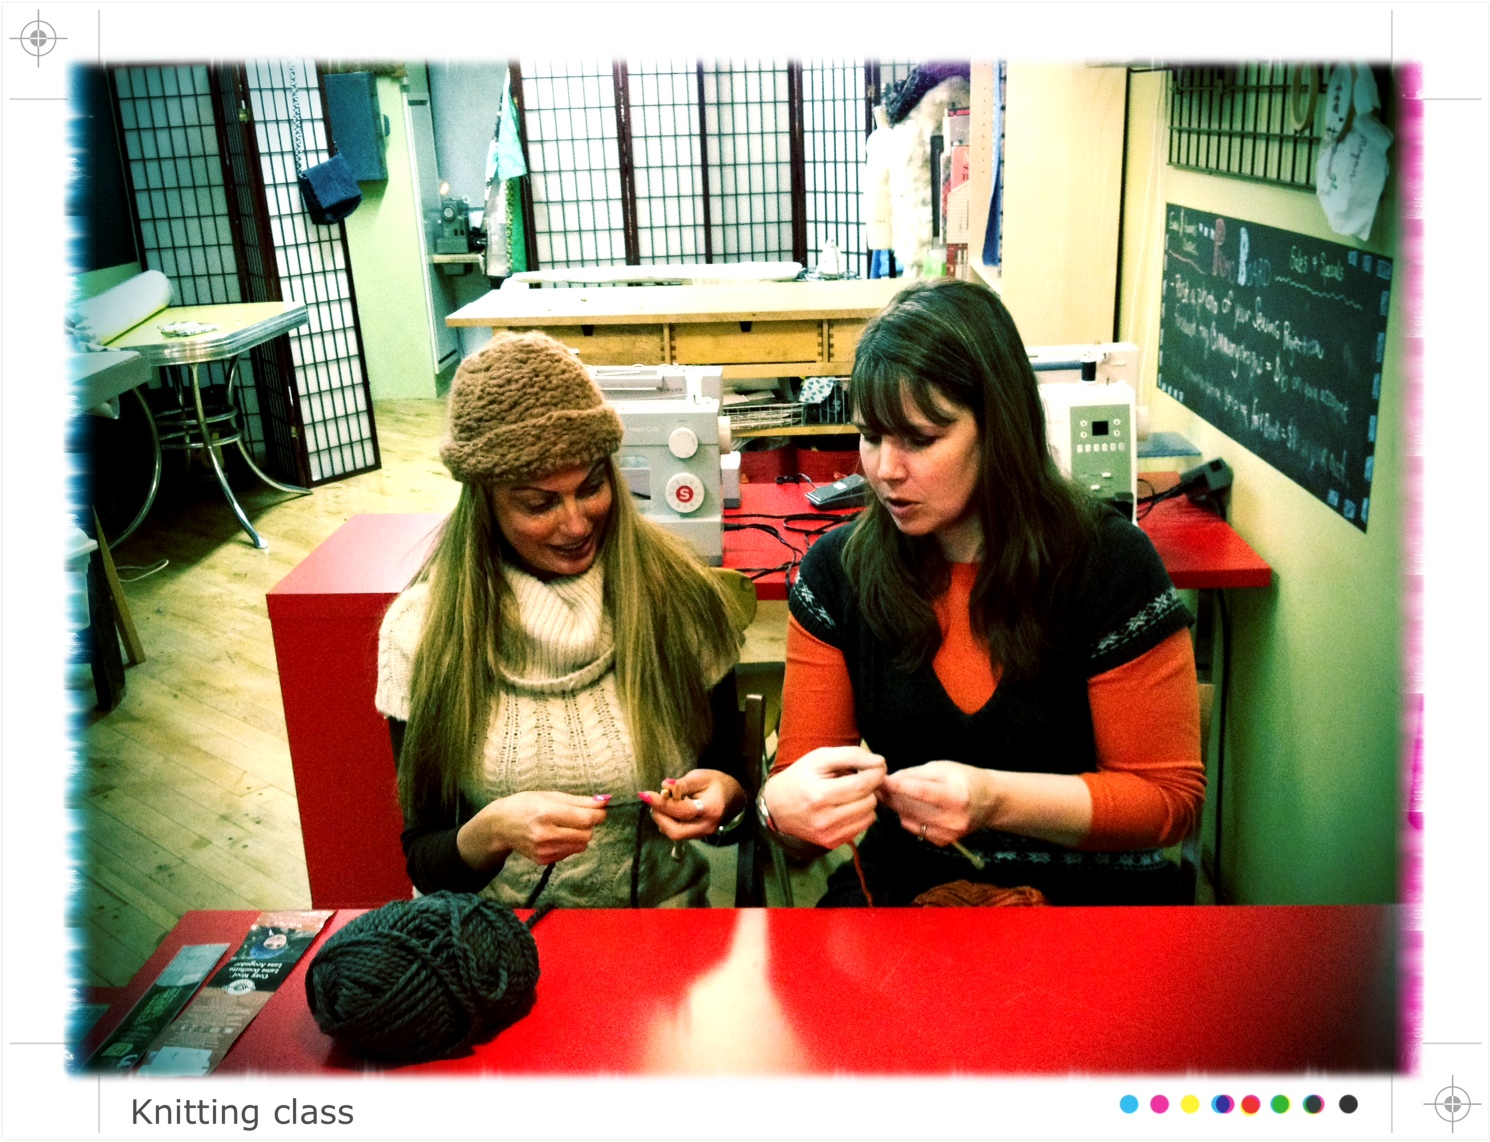 Private & Duet Knitting Lessons - M Avery Designs Sewing Studio